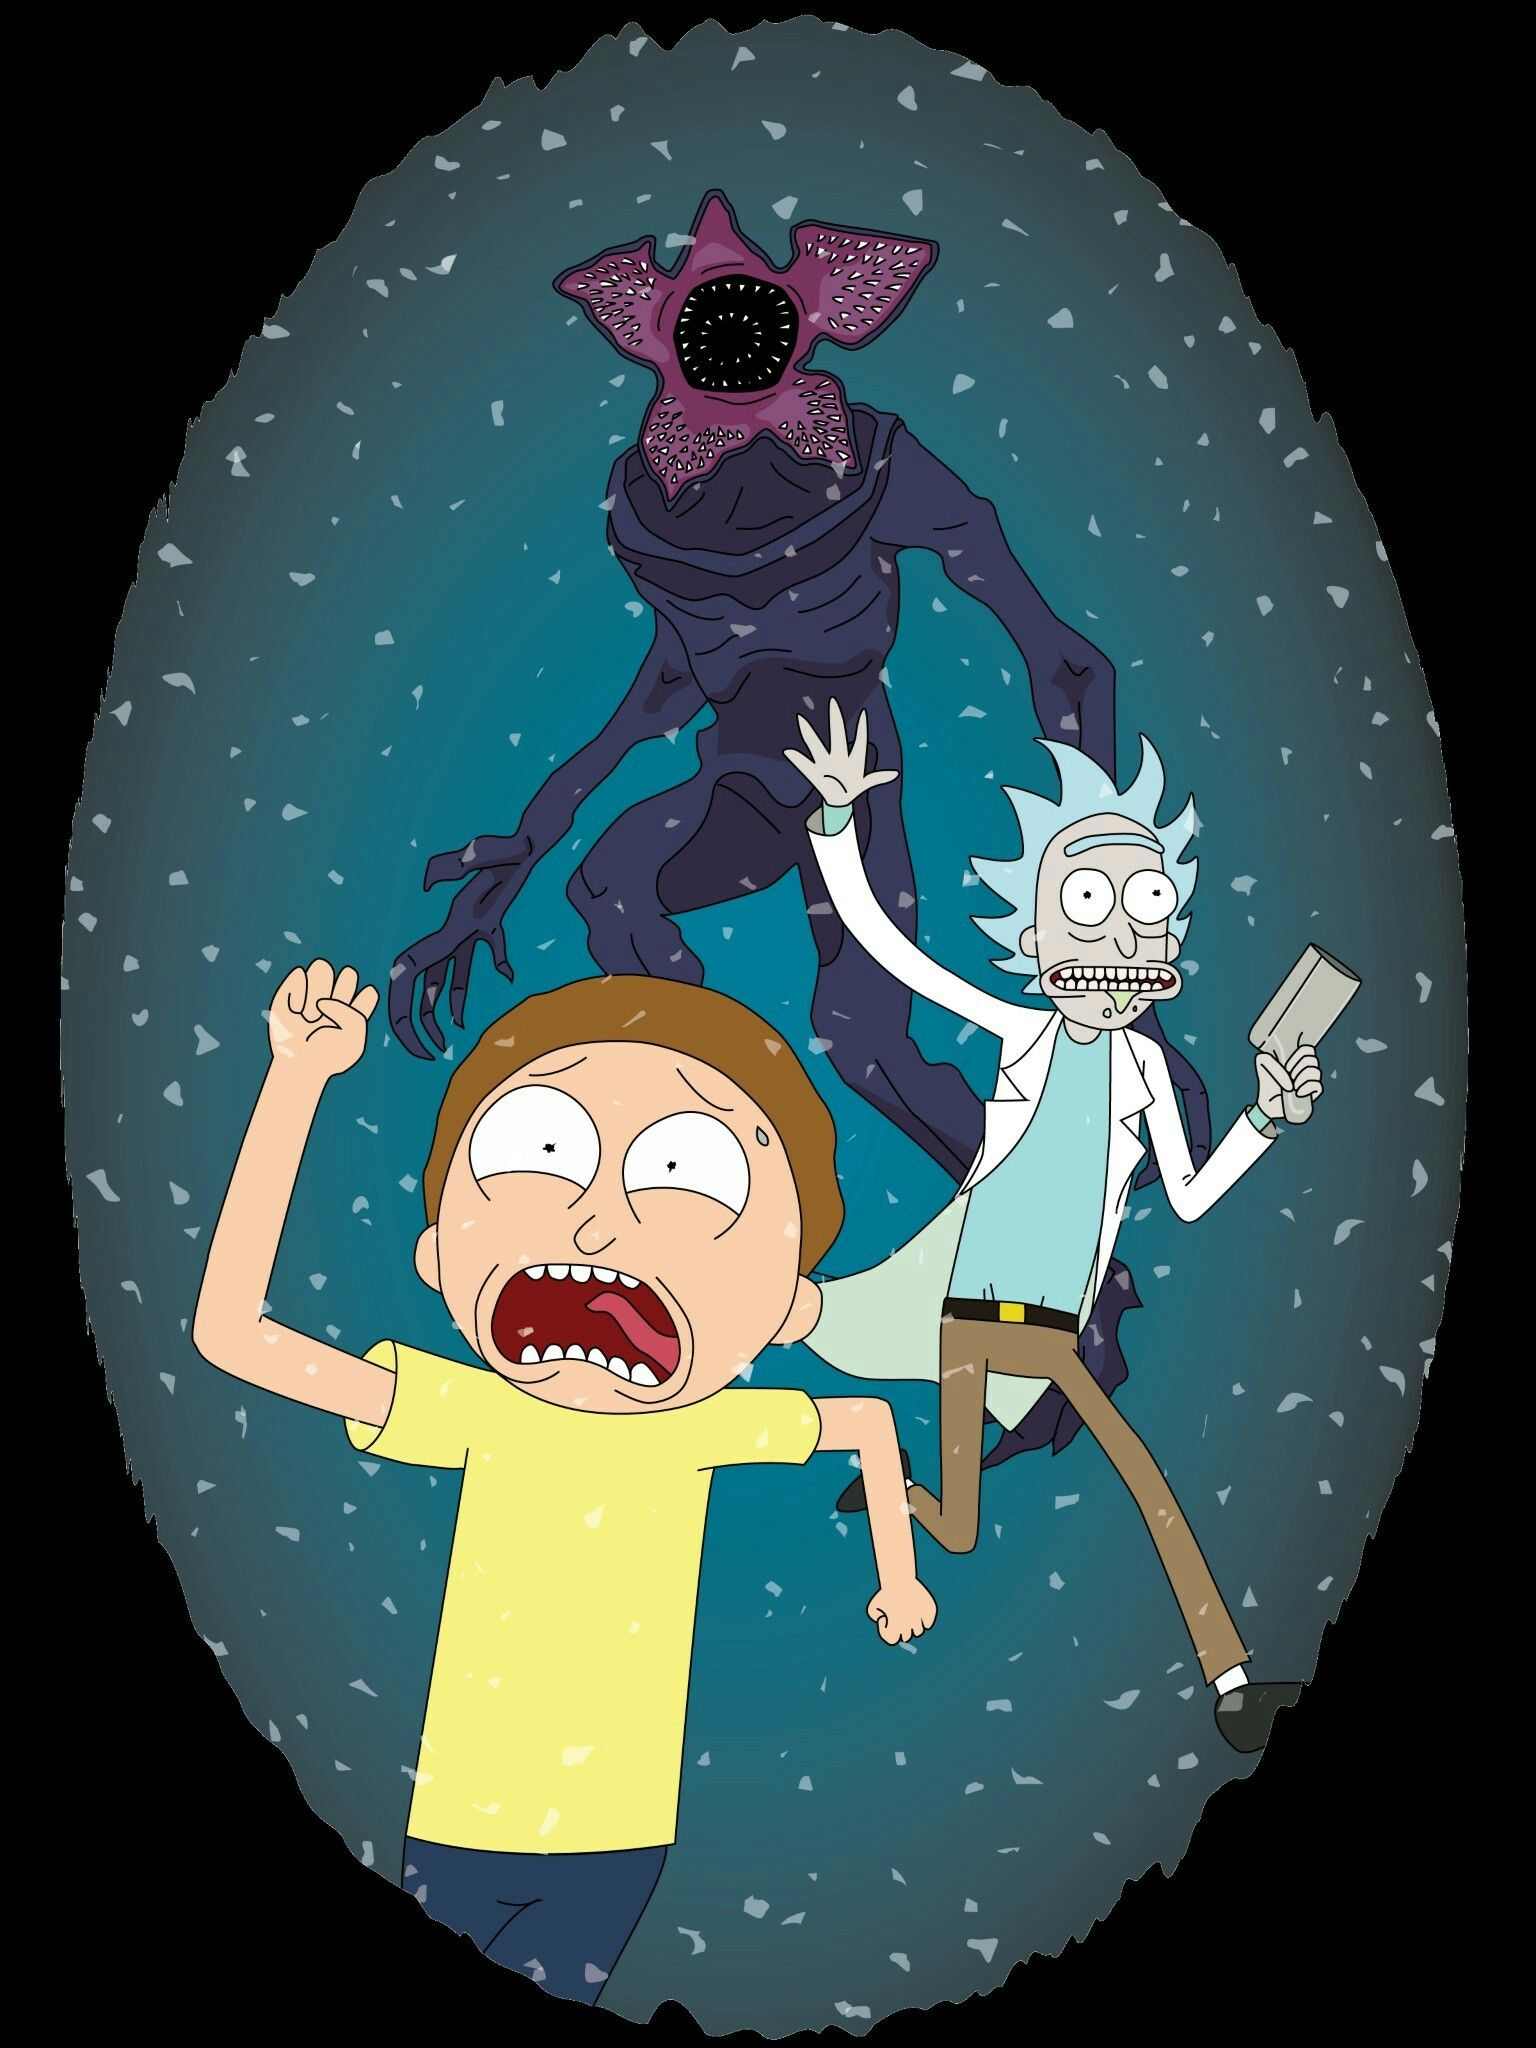 Rick And Morty In The Upside Down Via Reddit Rick And Morty